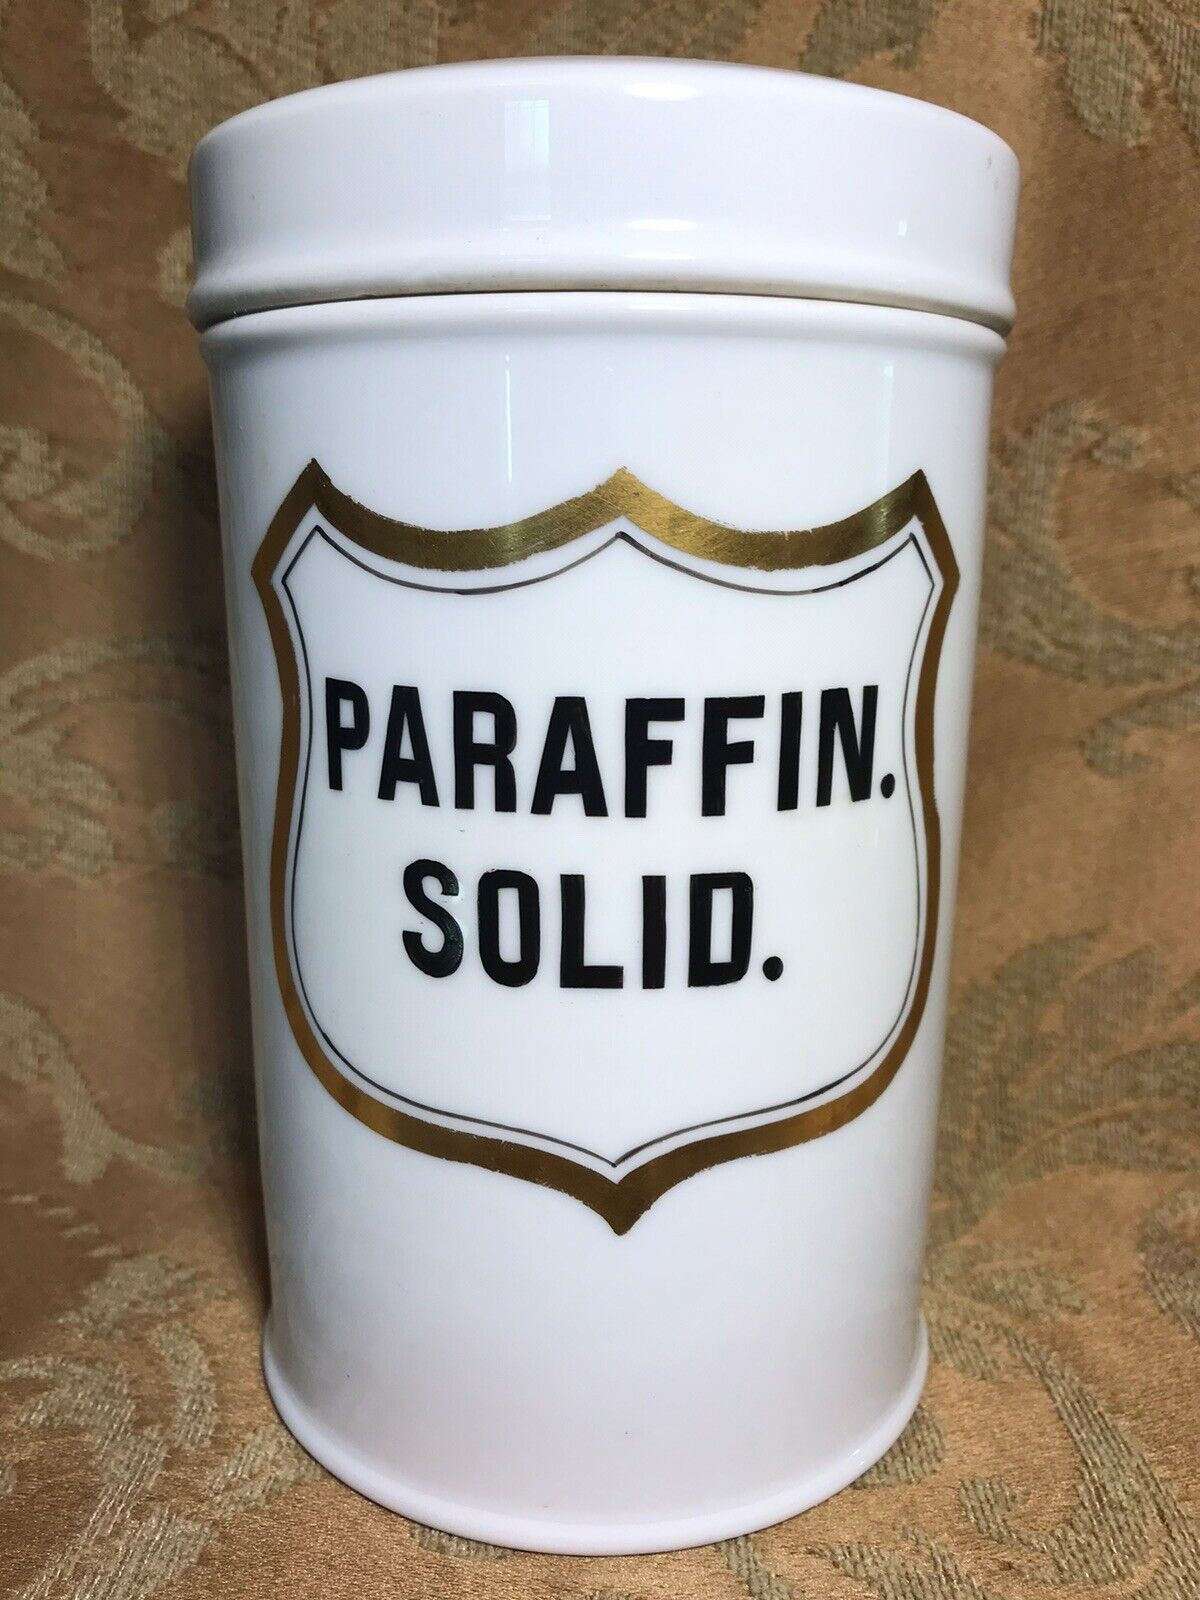 7 GERMAN Apothecary Porcelain Ointment Jar With Lid Label PARAFFIN. SOLID.  - $35.00